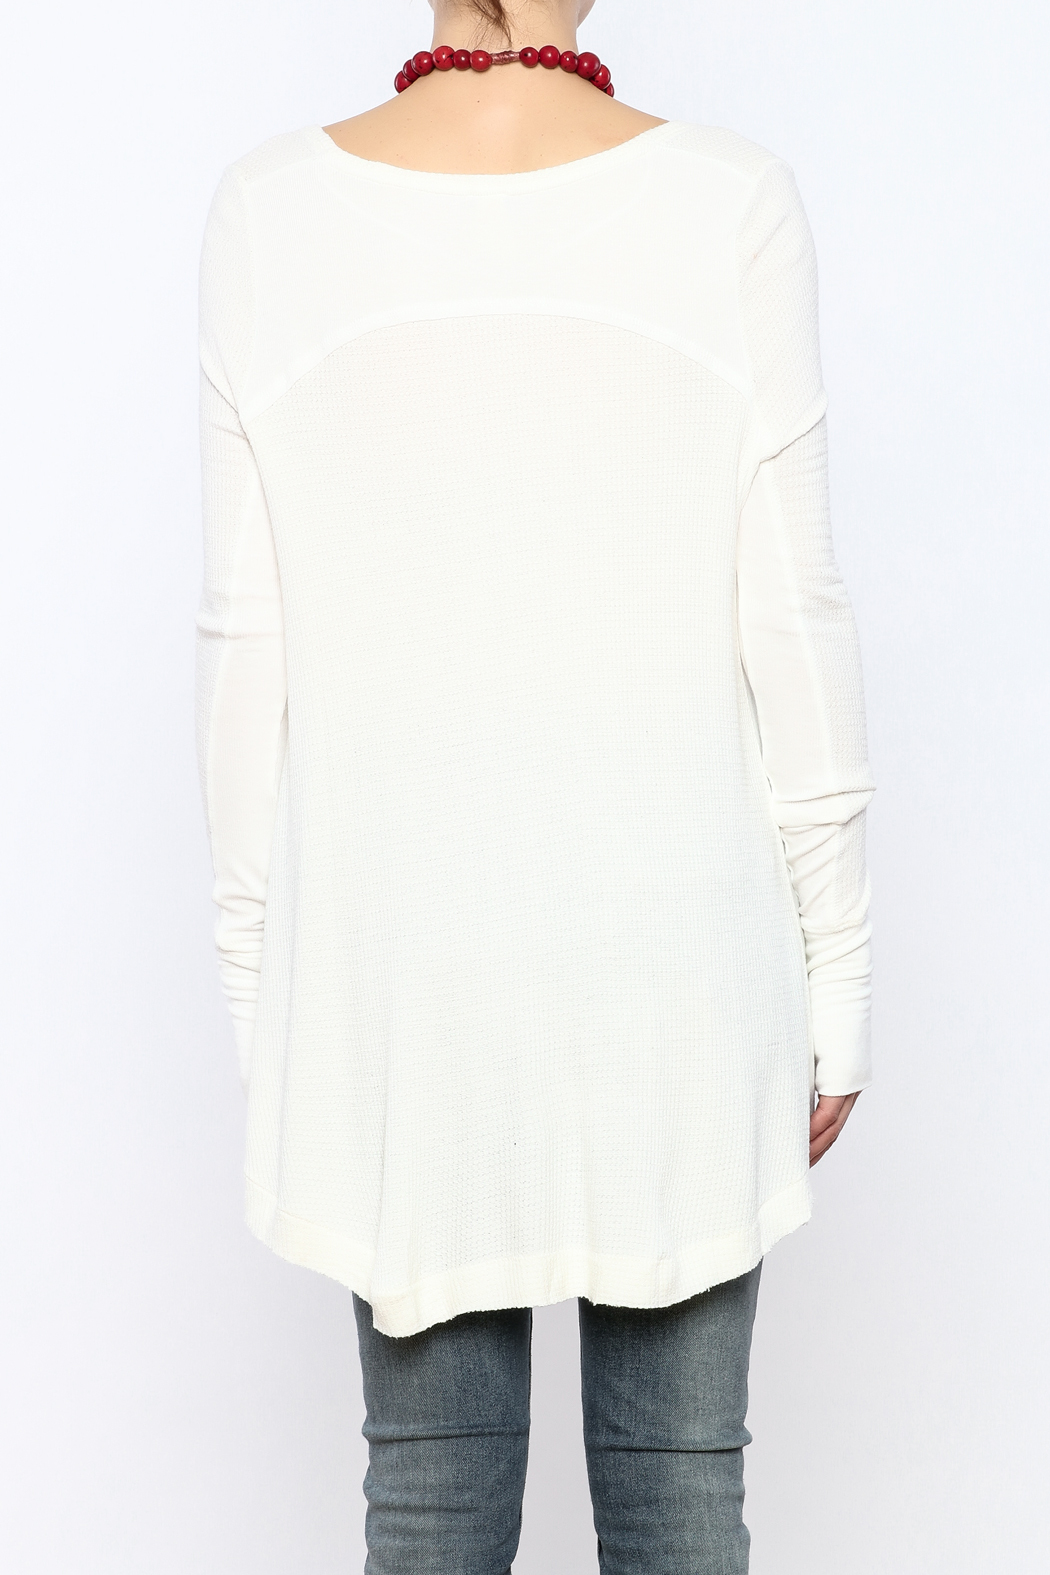 Free People Thermal Long Sleeve Top - Back Cropped Image